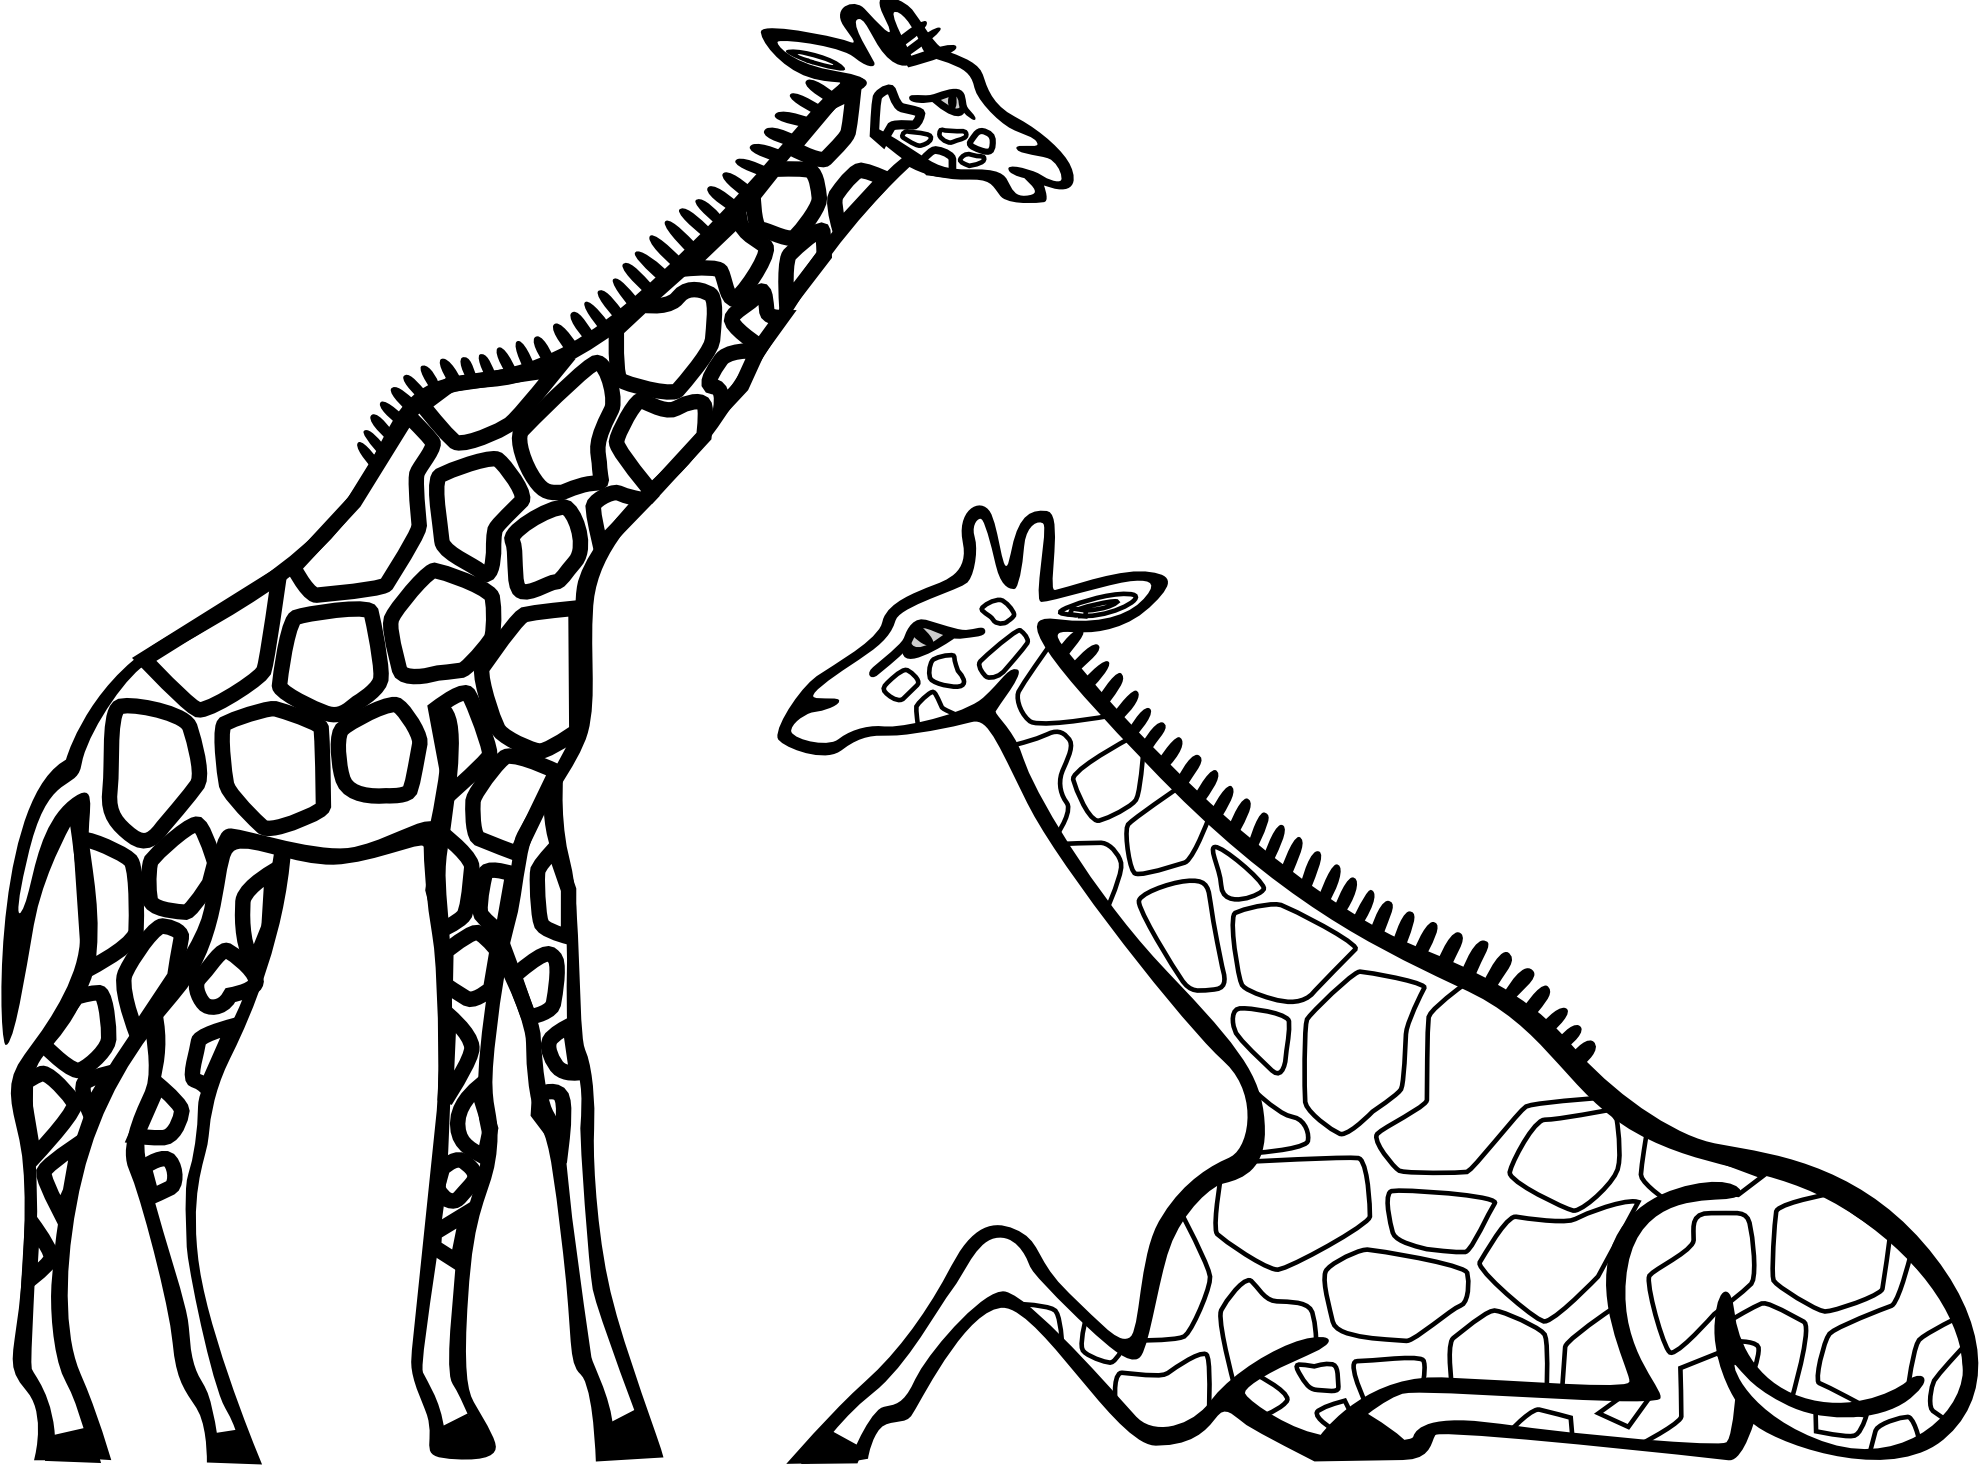 Free black and white clipart for giraffe. Download best